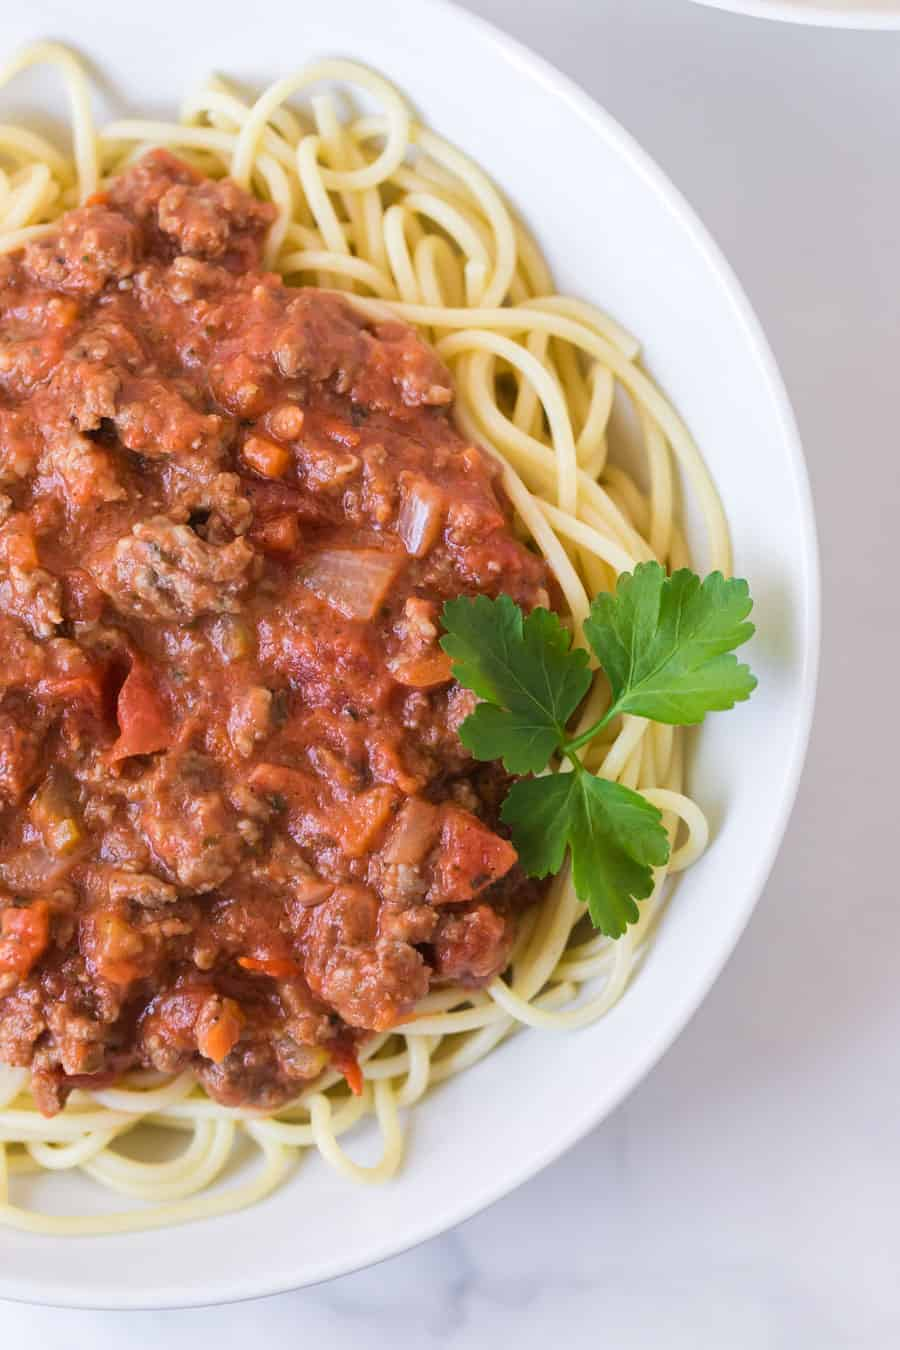 round white bowl of spaghetti with homemade bolognese sauce and garnish